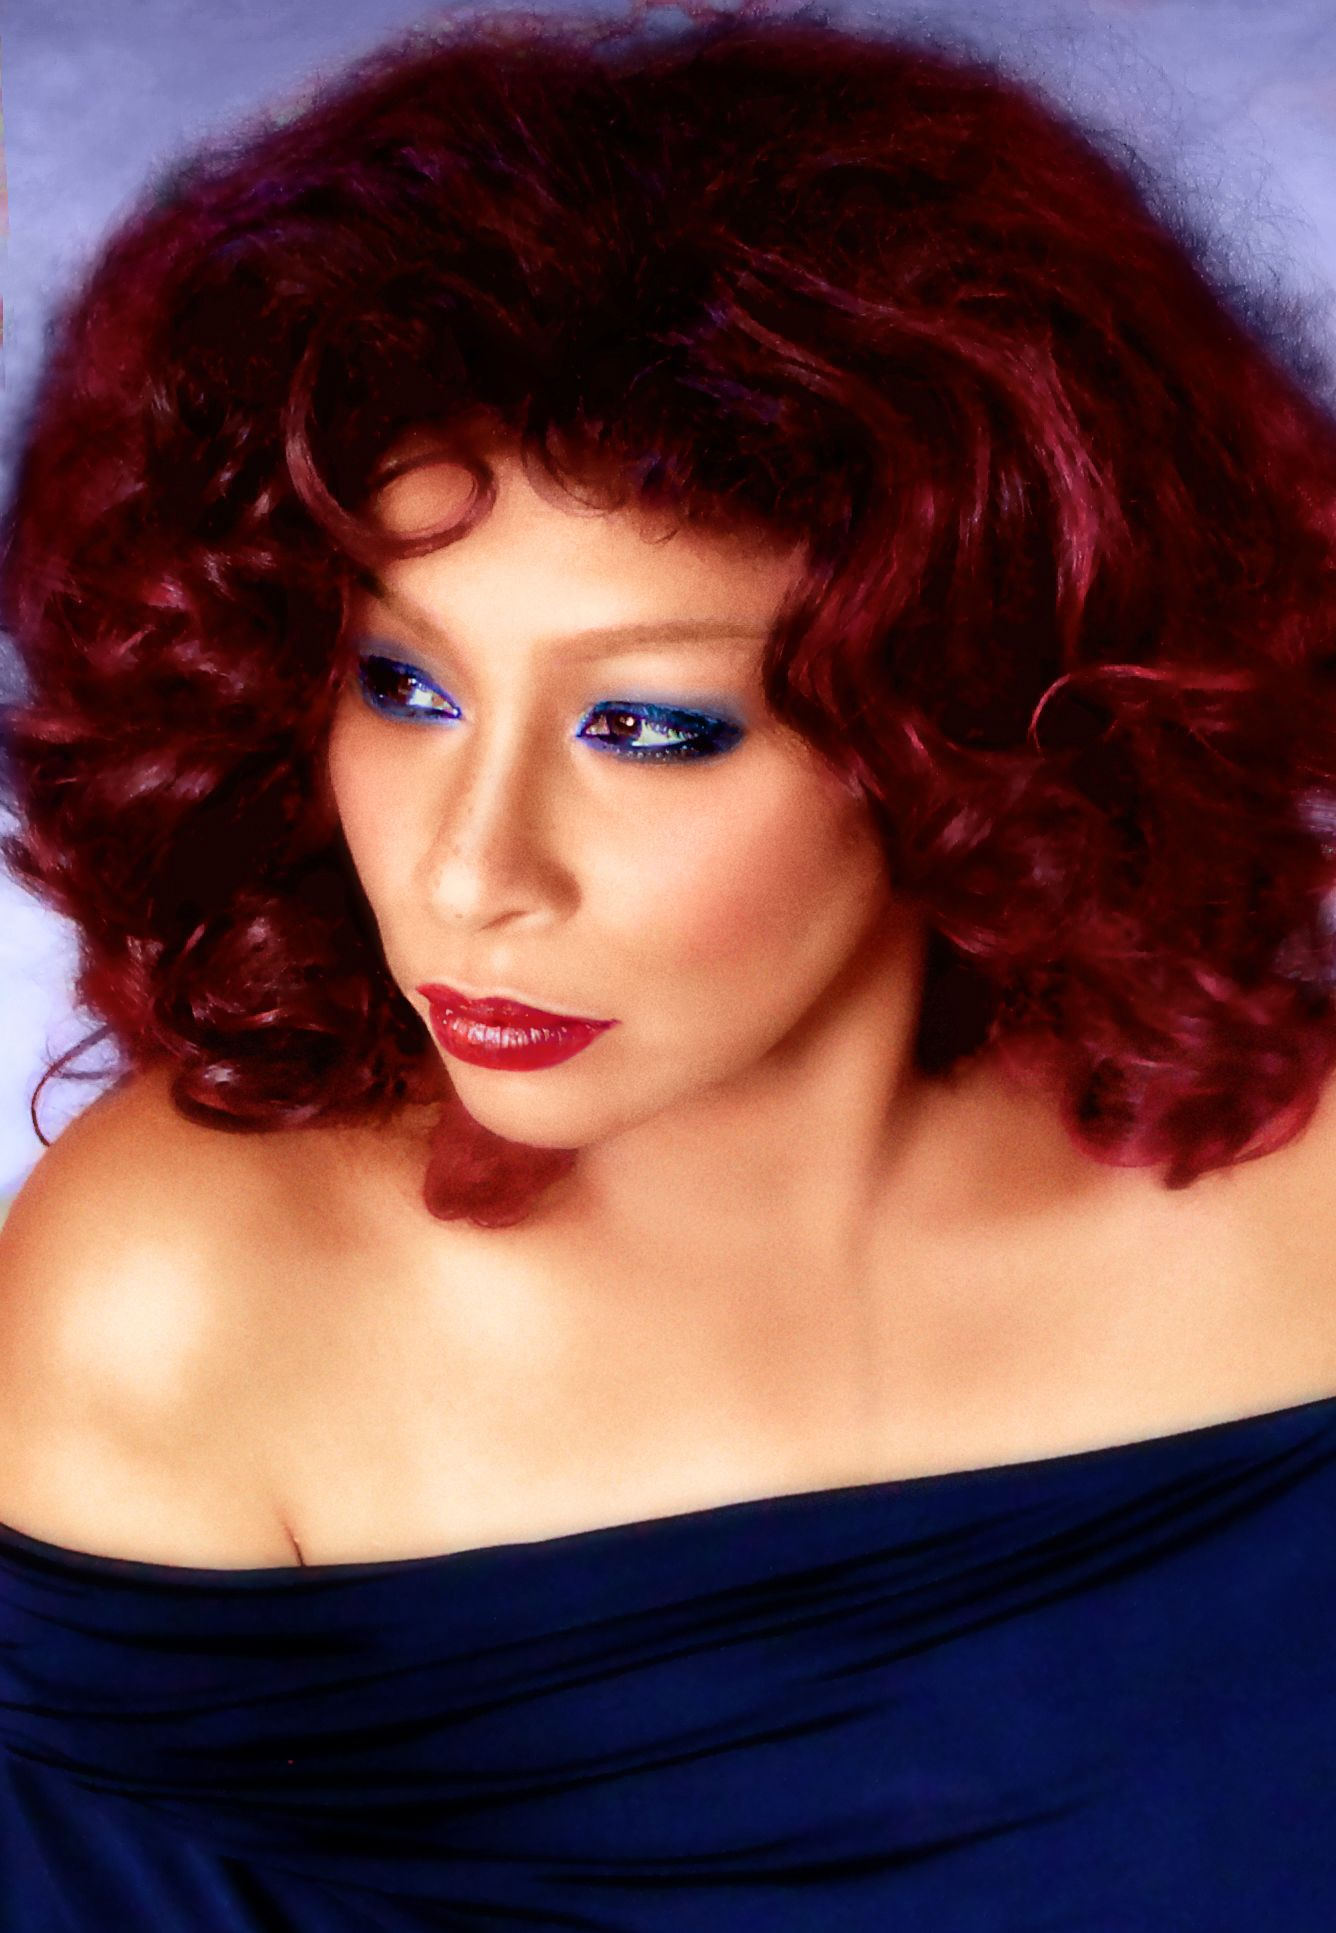 Join Chaka Khan live on Google + Hangout on Air 3/19 6pm